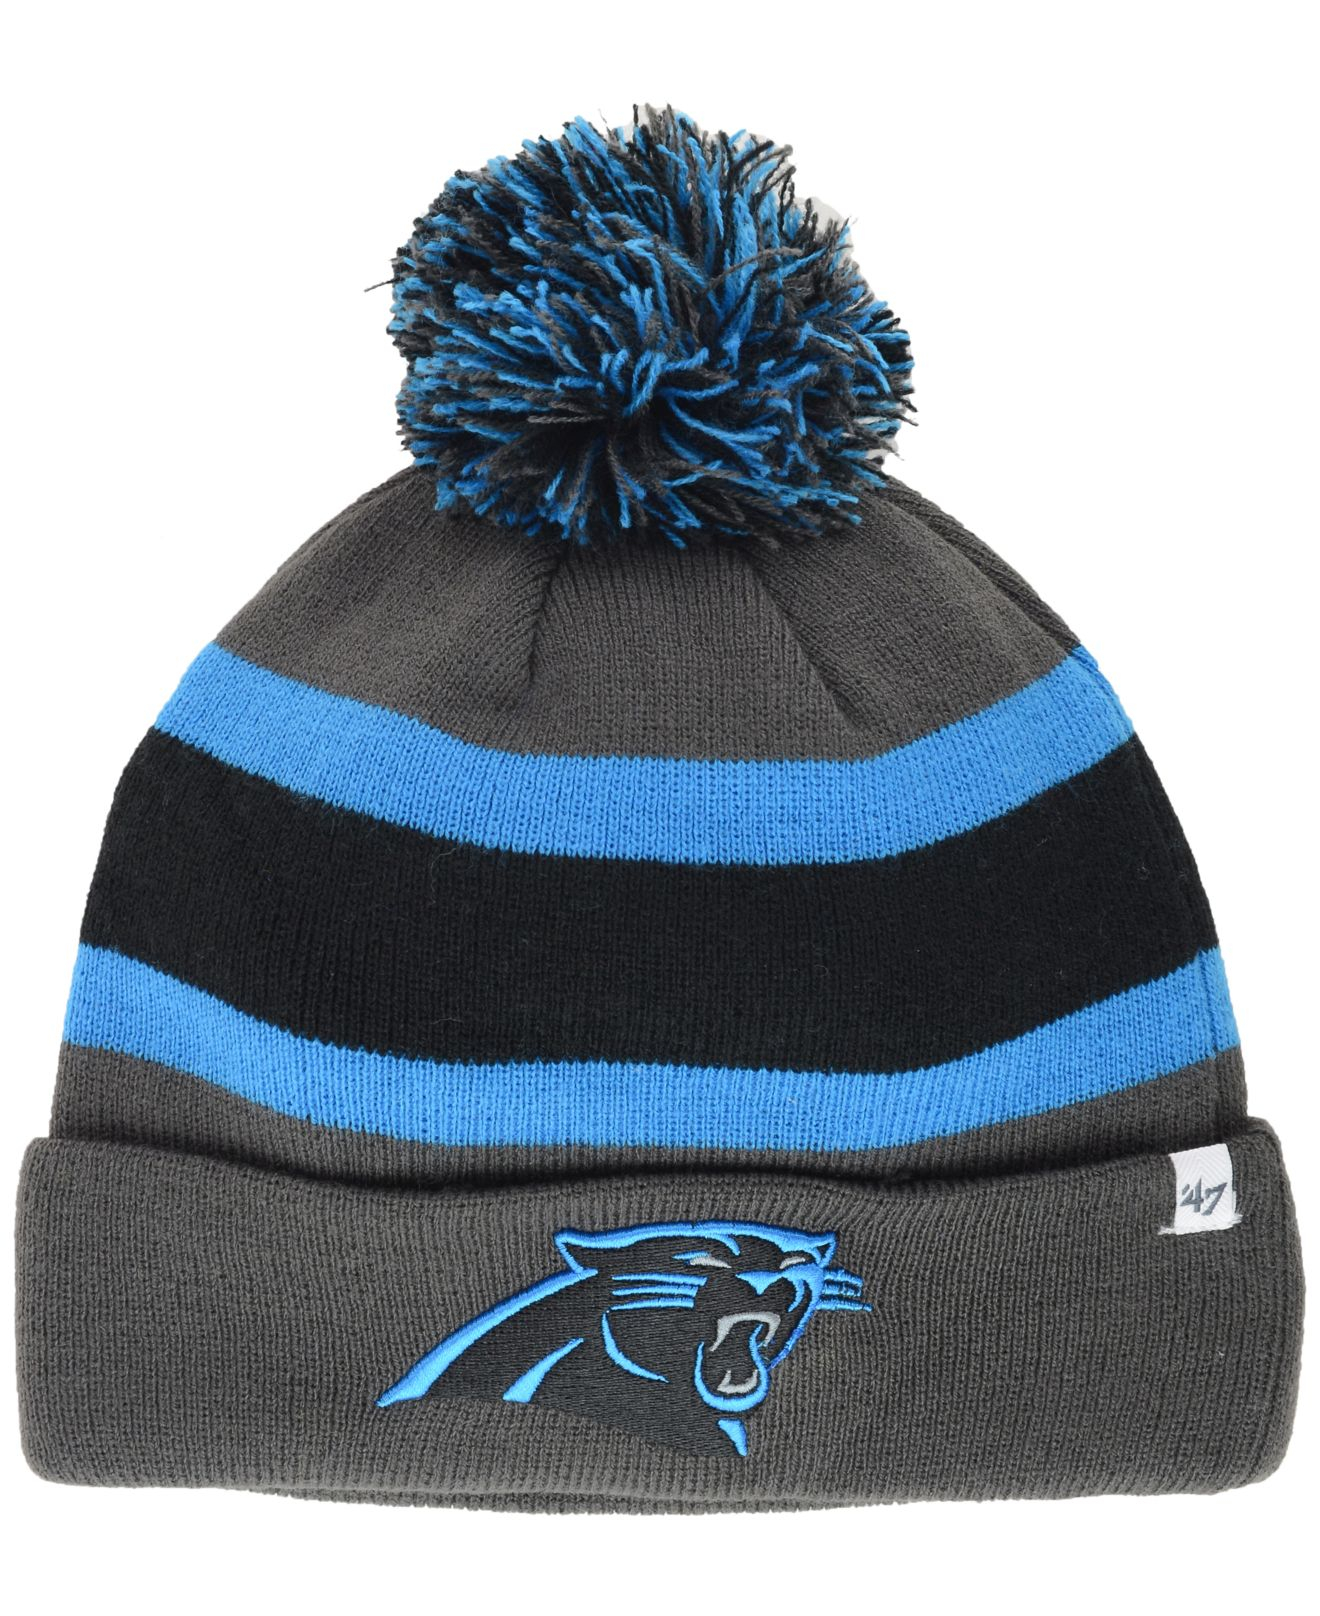 ... reduced new zealand lyst 47 brand carolina panthers breakaway knit hat  in gray for men ccfde 229213566